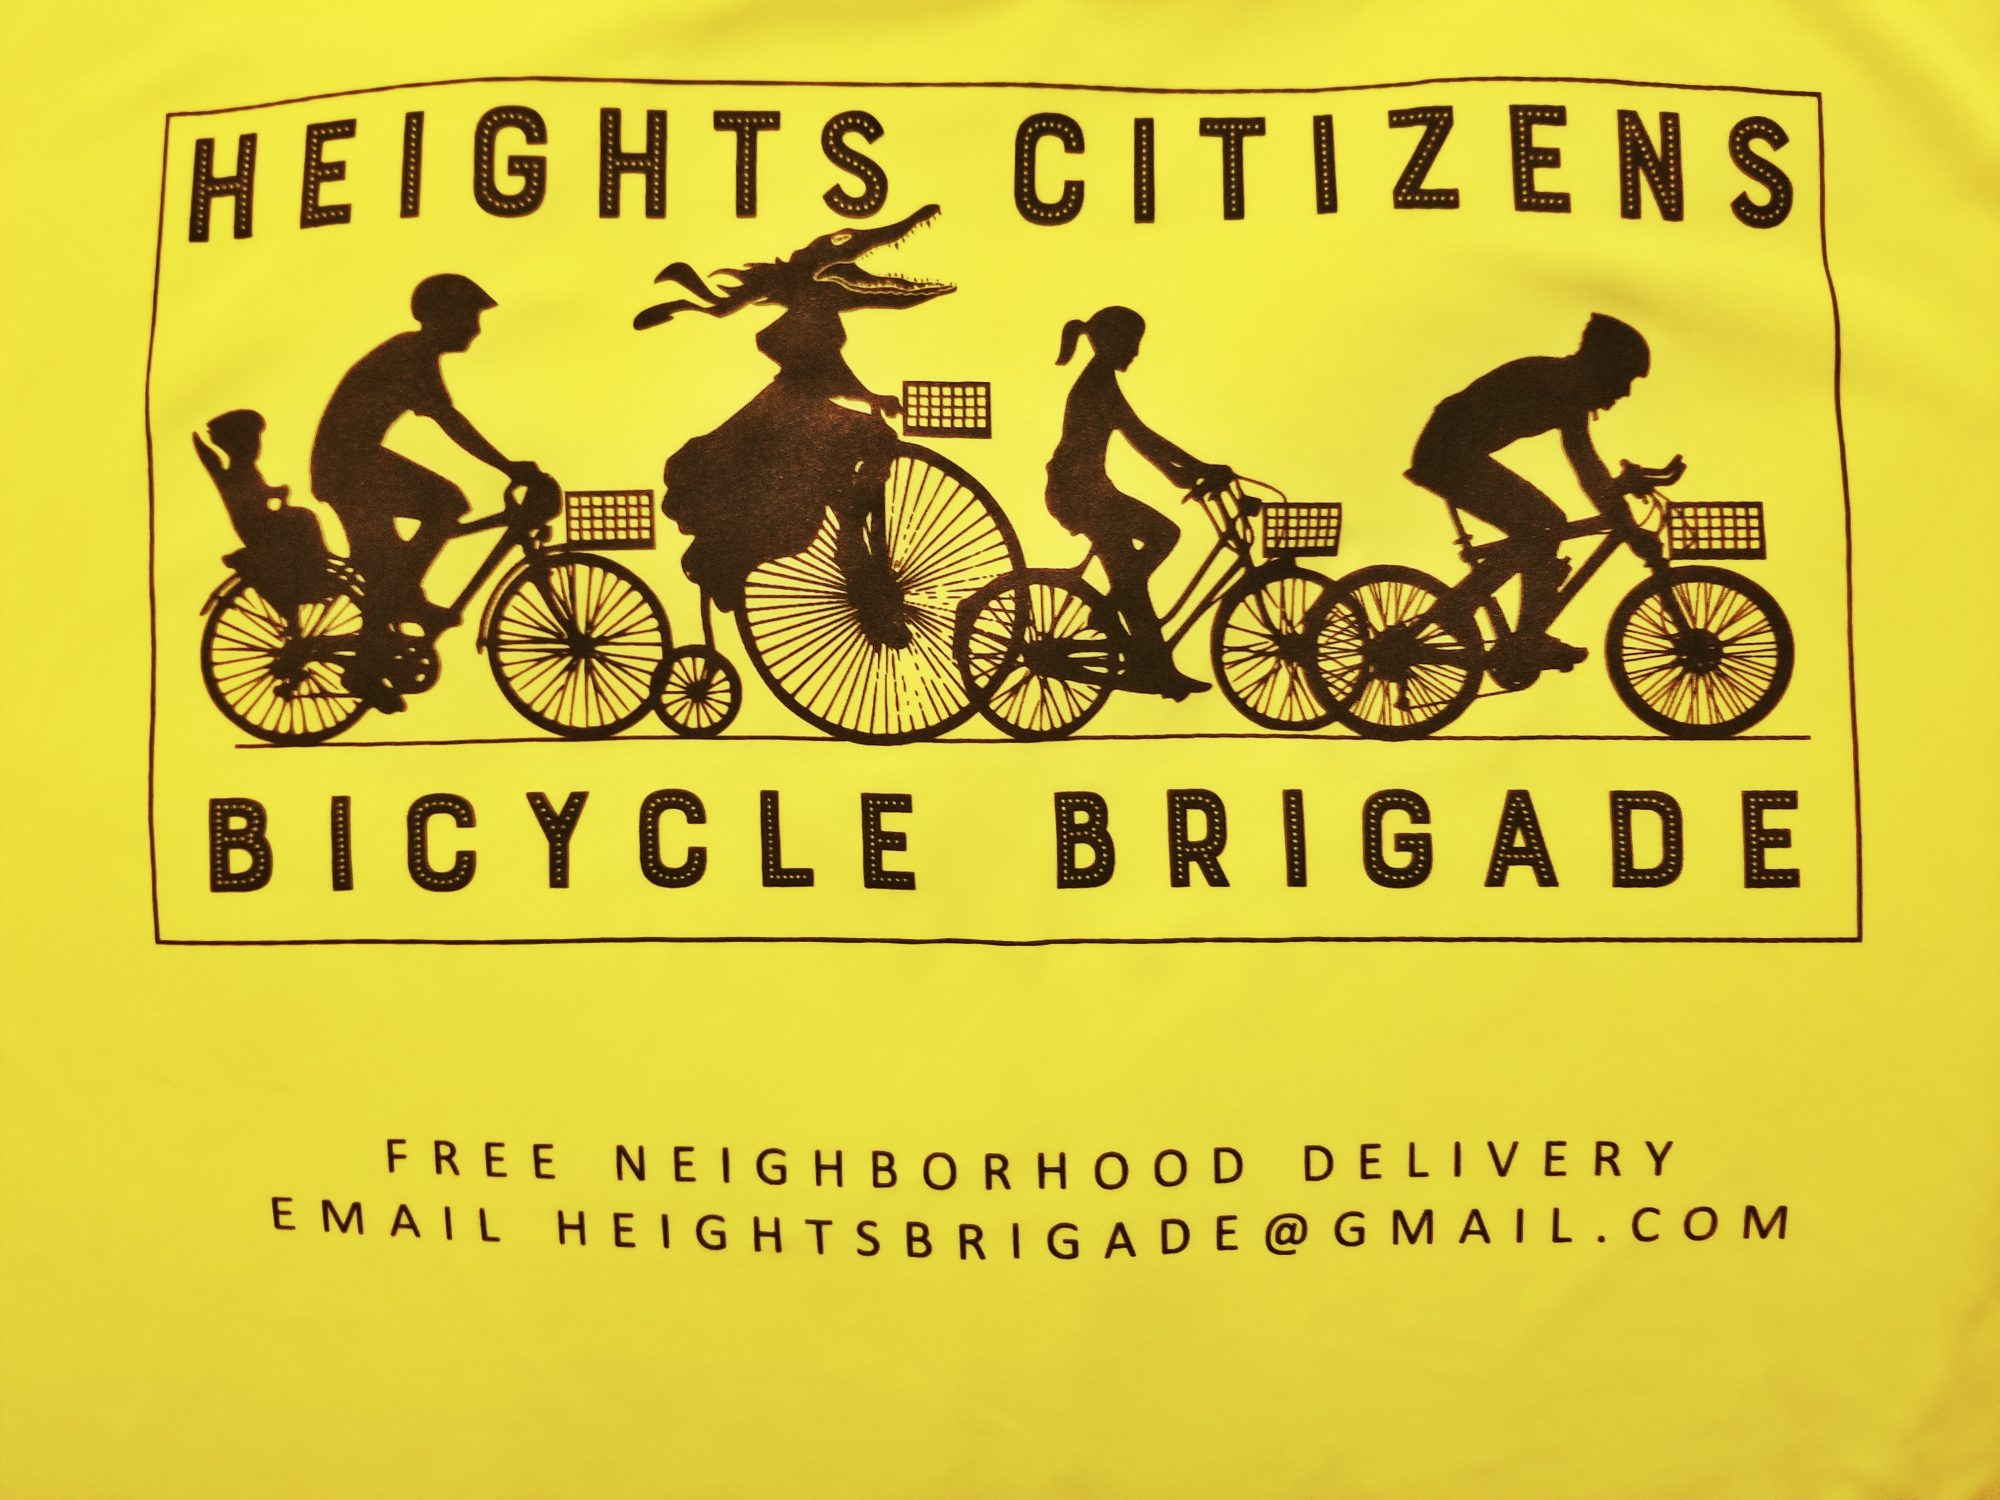 Heights Citizens Bicycle Brigade logo